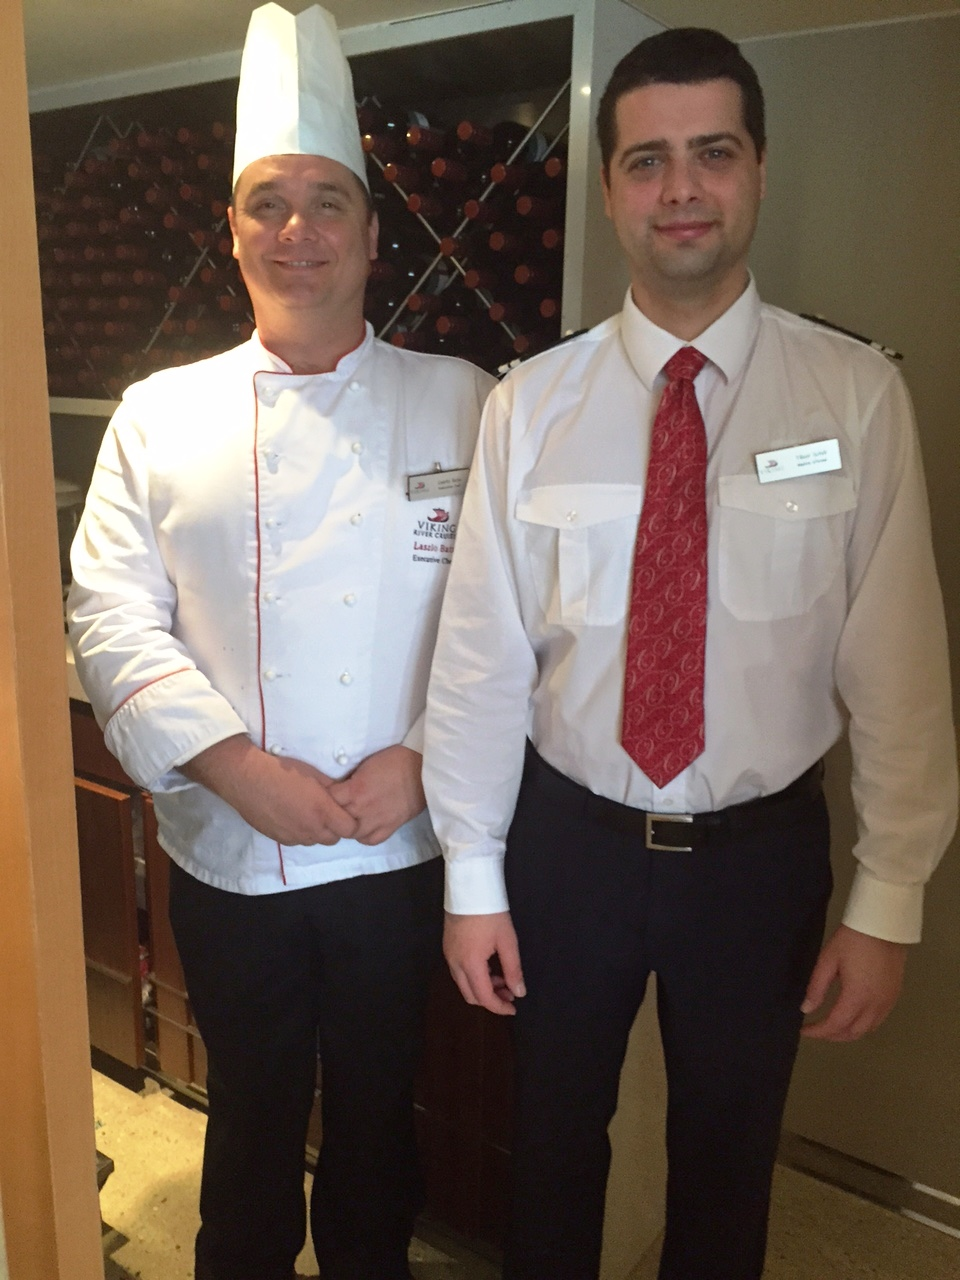 The Best Of Viking River Cruises Part I Bonvoyageurs - Dining room manager